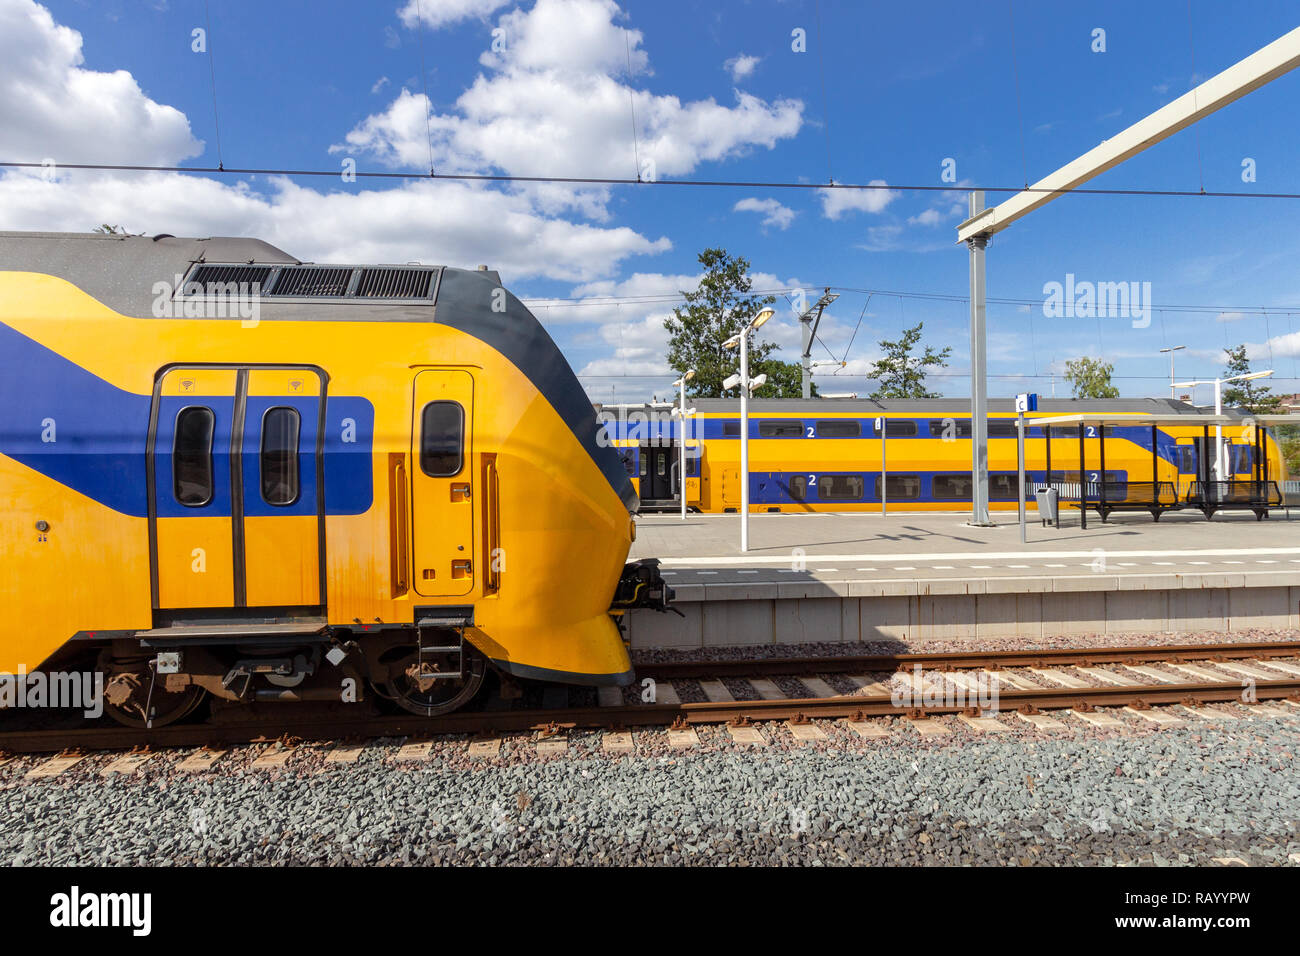 Dutch Intercity trains at the platform of a train station in The Netherlands. - Stock Image